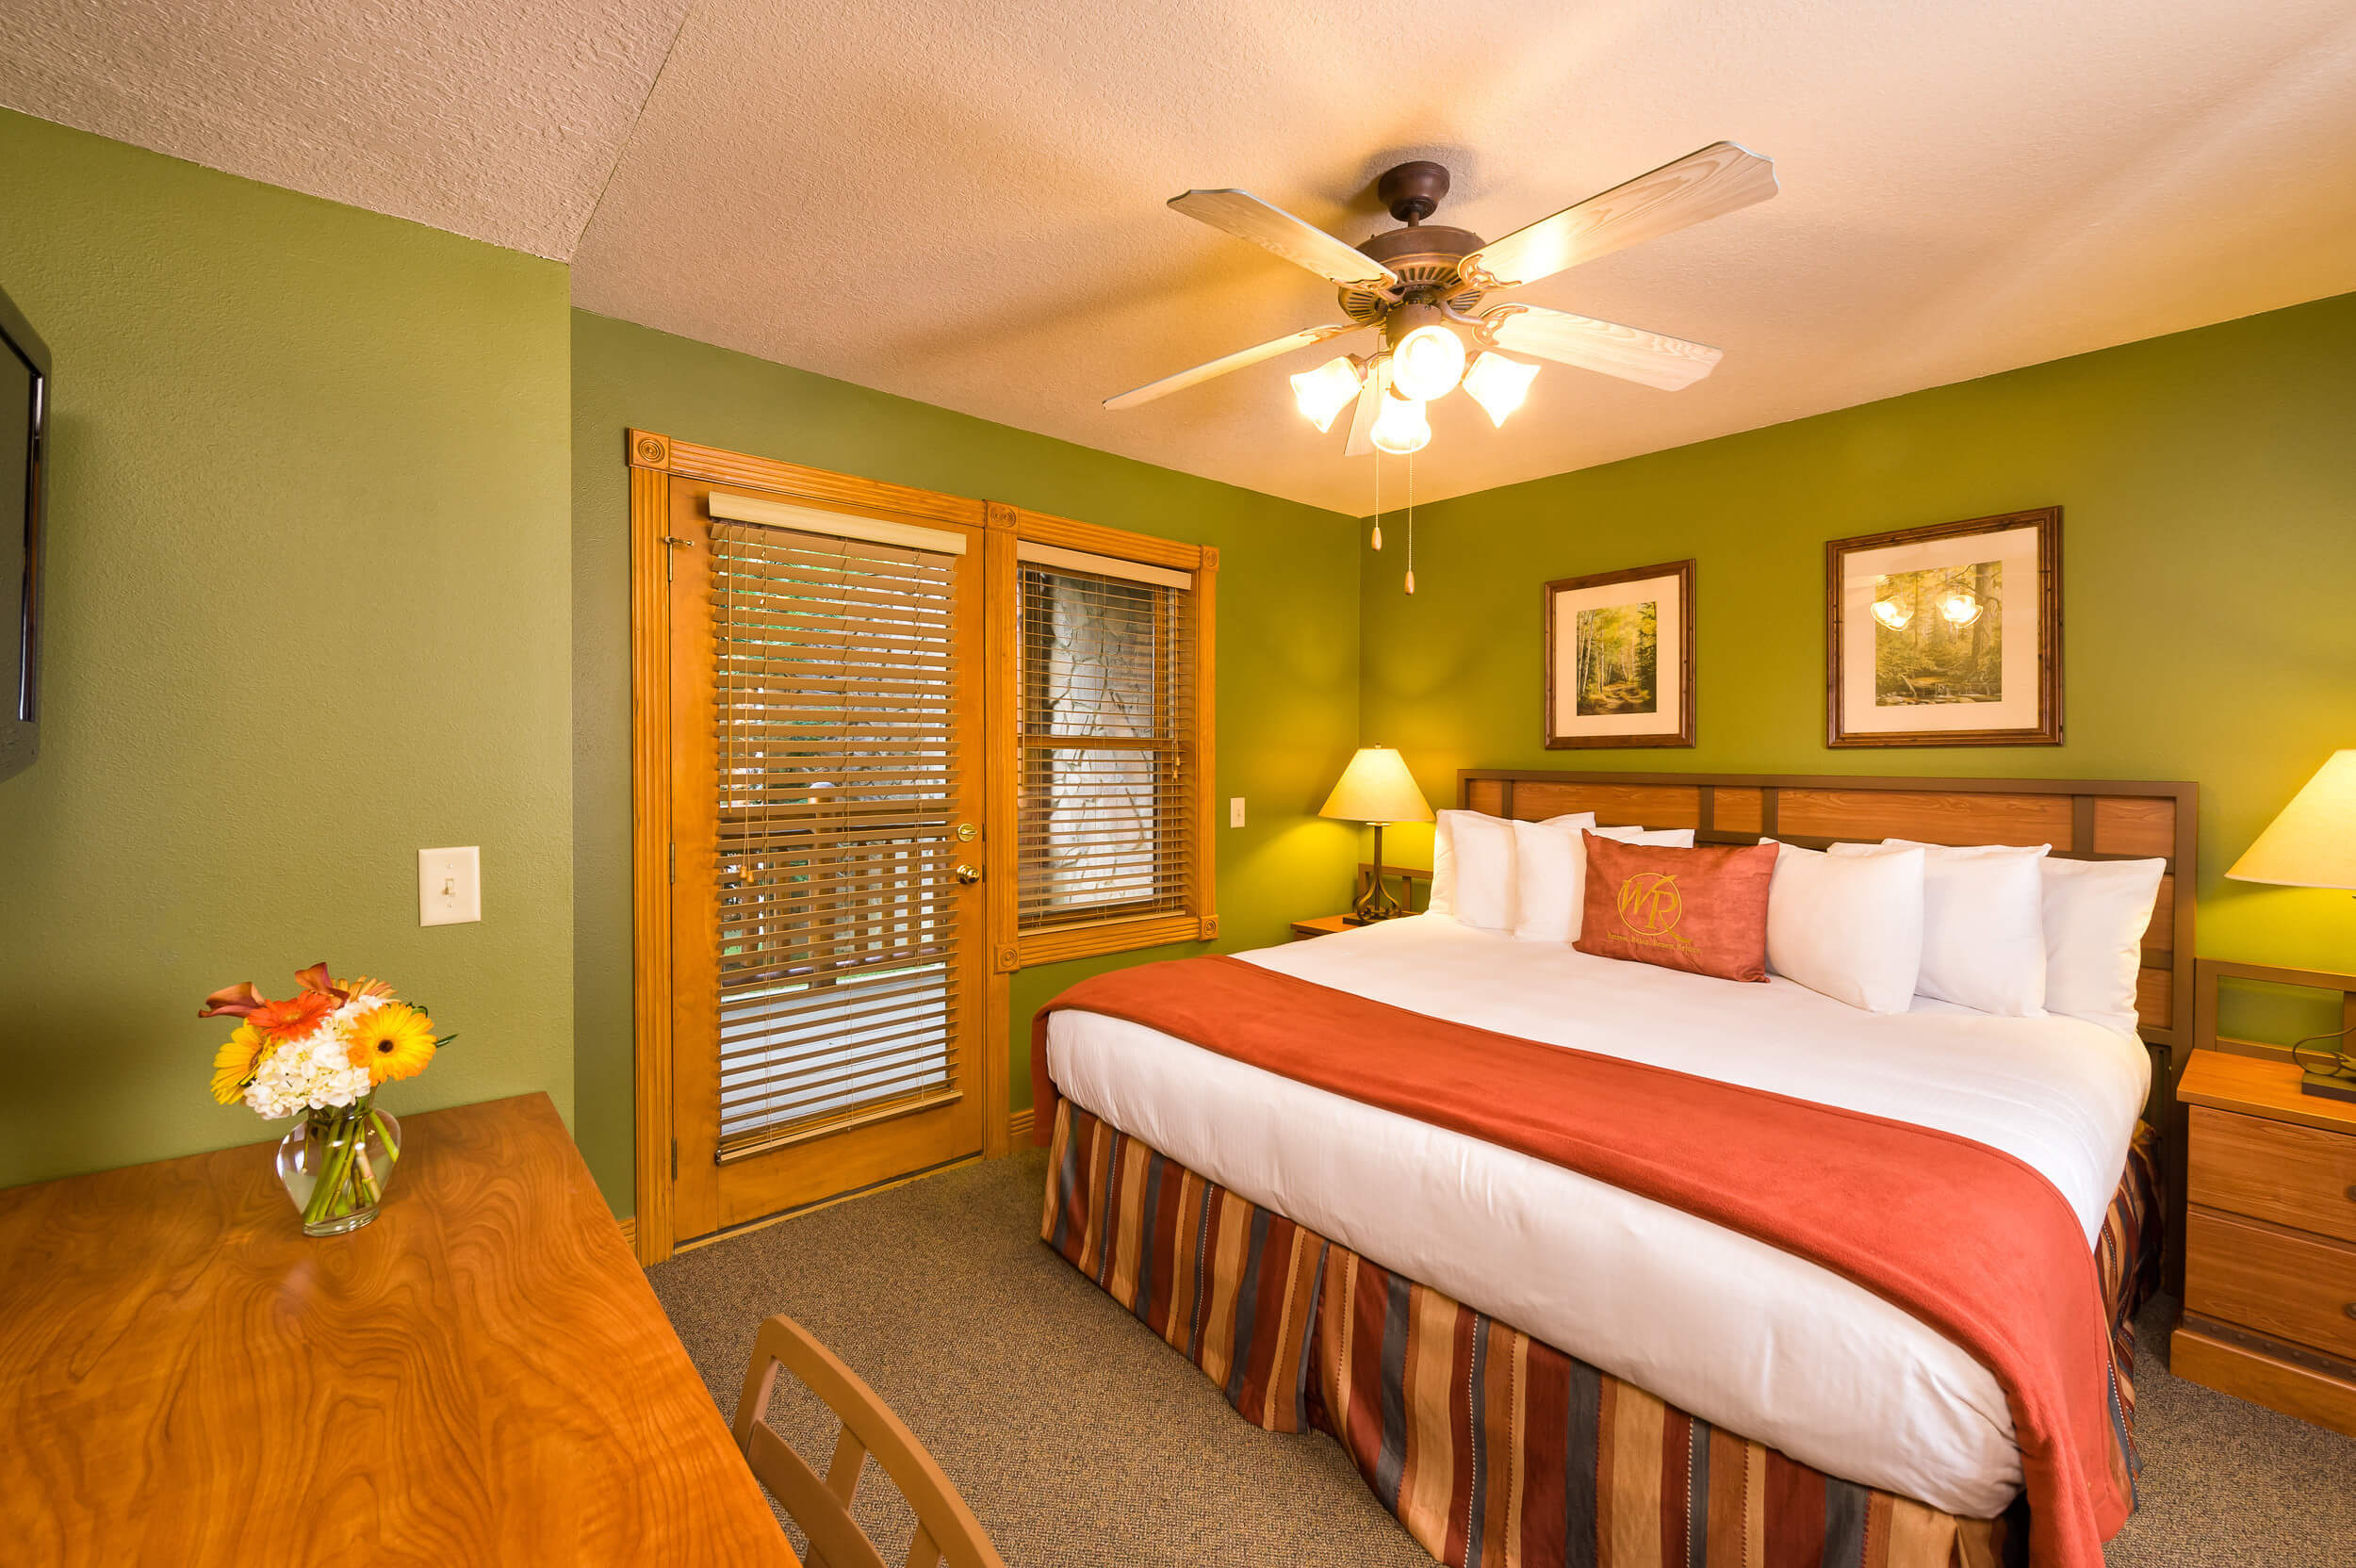 One Bedroom Deluxe King Bed Villa at our Gatlinburg Villas | Westgate Smoky Mountain Resort & Spa | Westgate Resorts